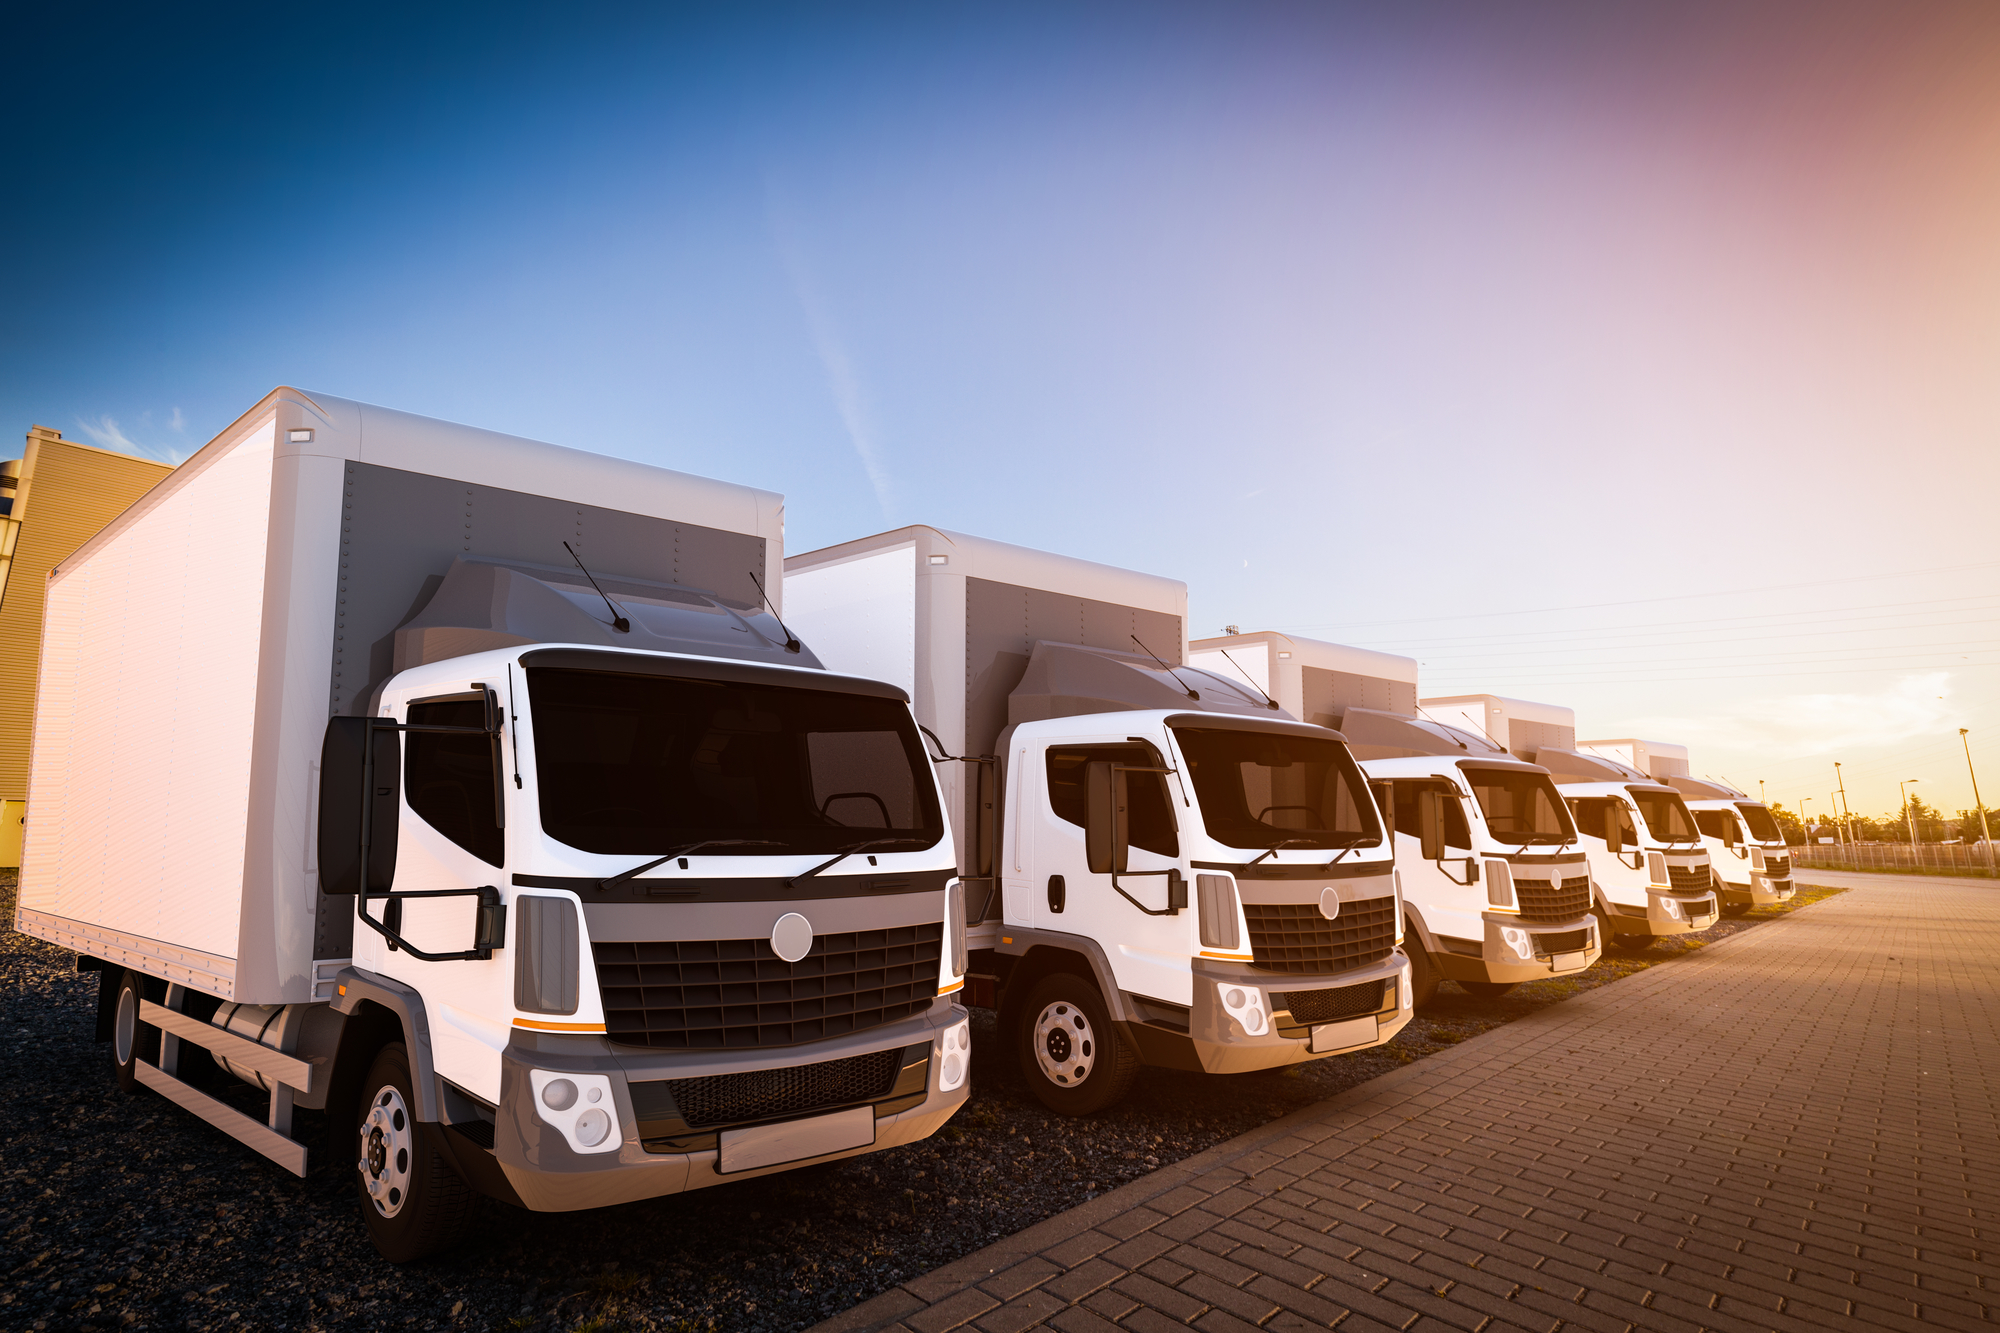 Fleet of commercial delivery trucks on cargo parking.